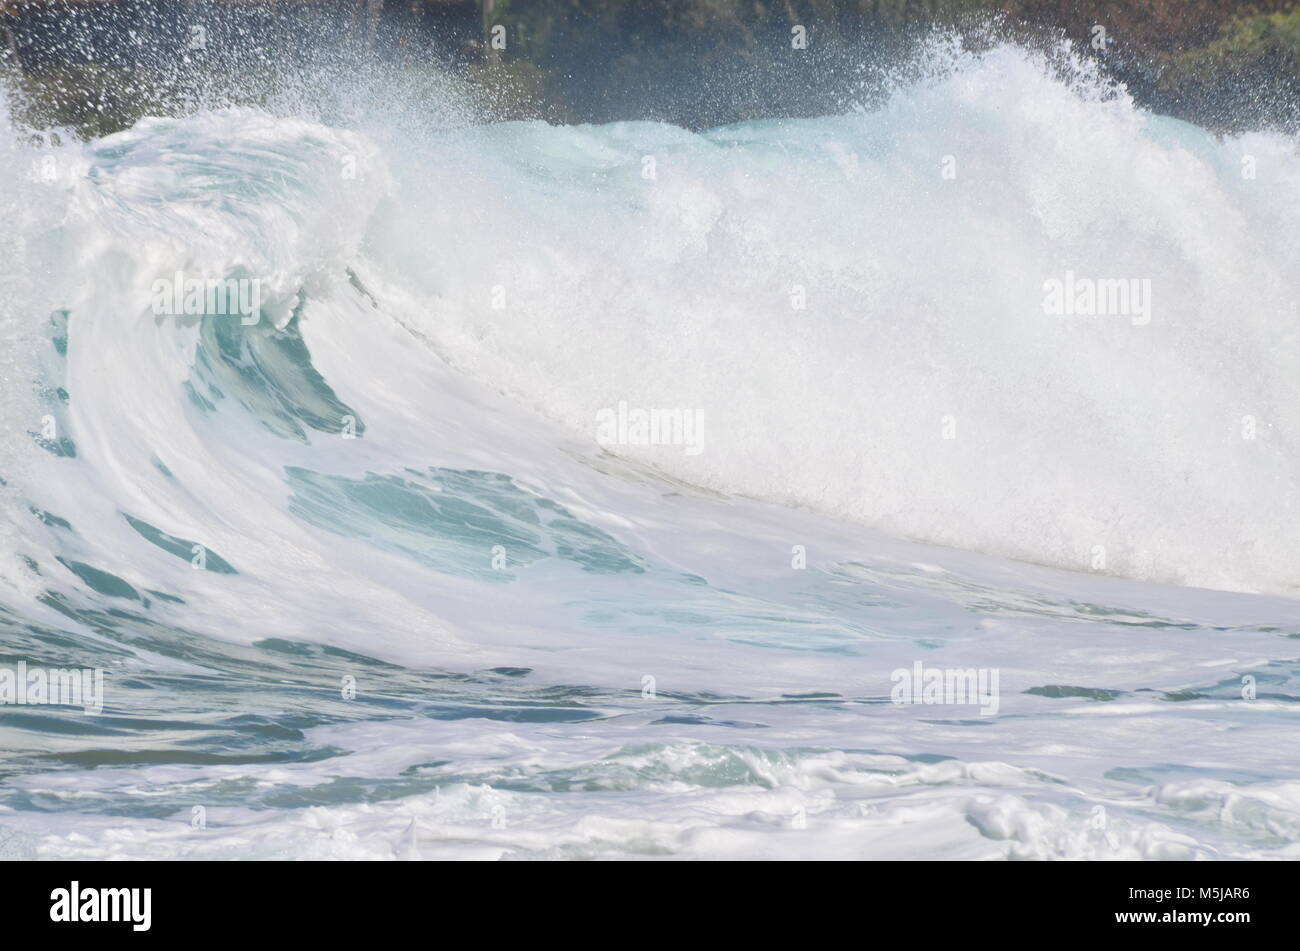 Crashing waves at a beach in Hawaii, during a tropical storm and high tide - Stock Image